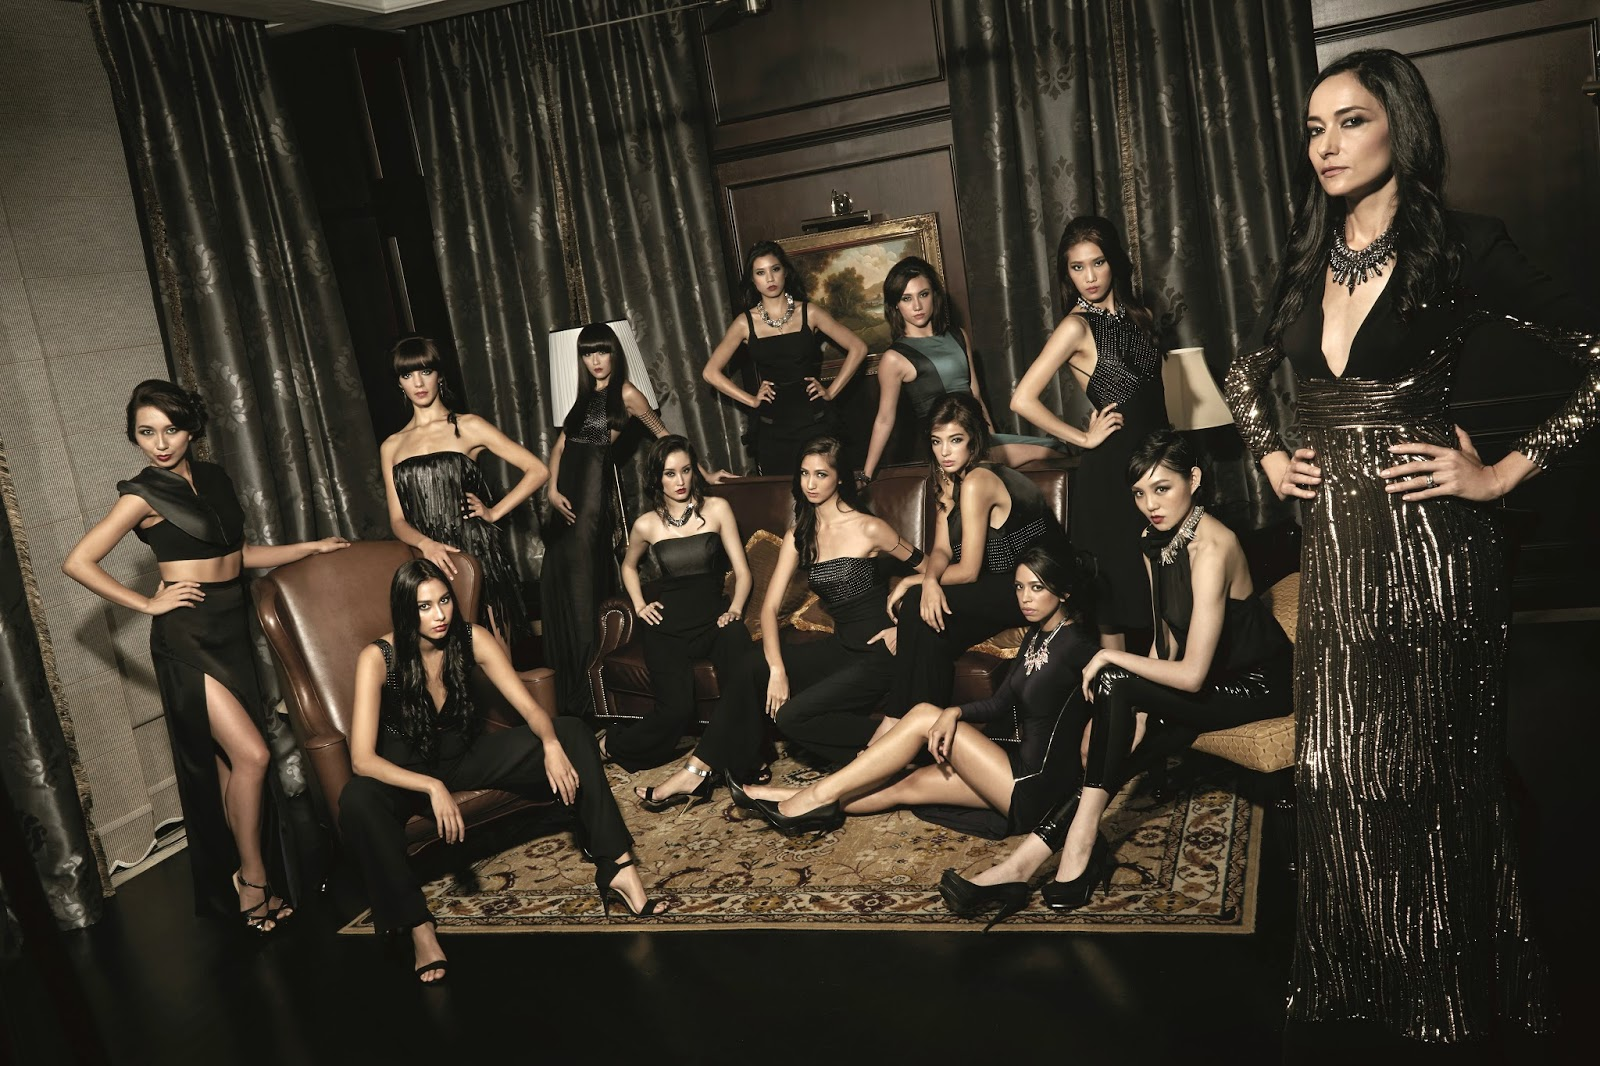 SUPERMODELME SEASON 5 RETURNS TO DIVA  WITH FOUR SIRENS IN MANILA